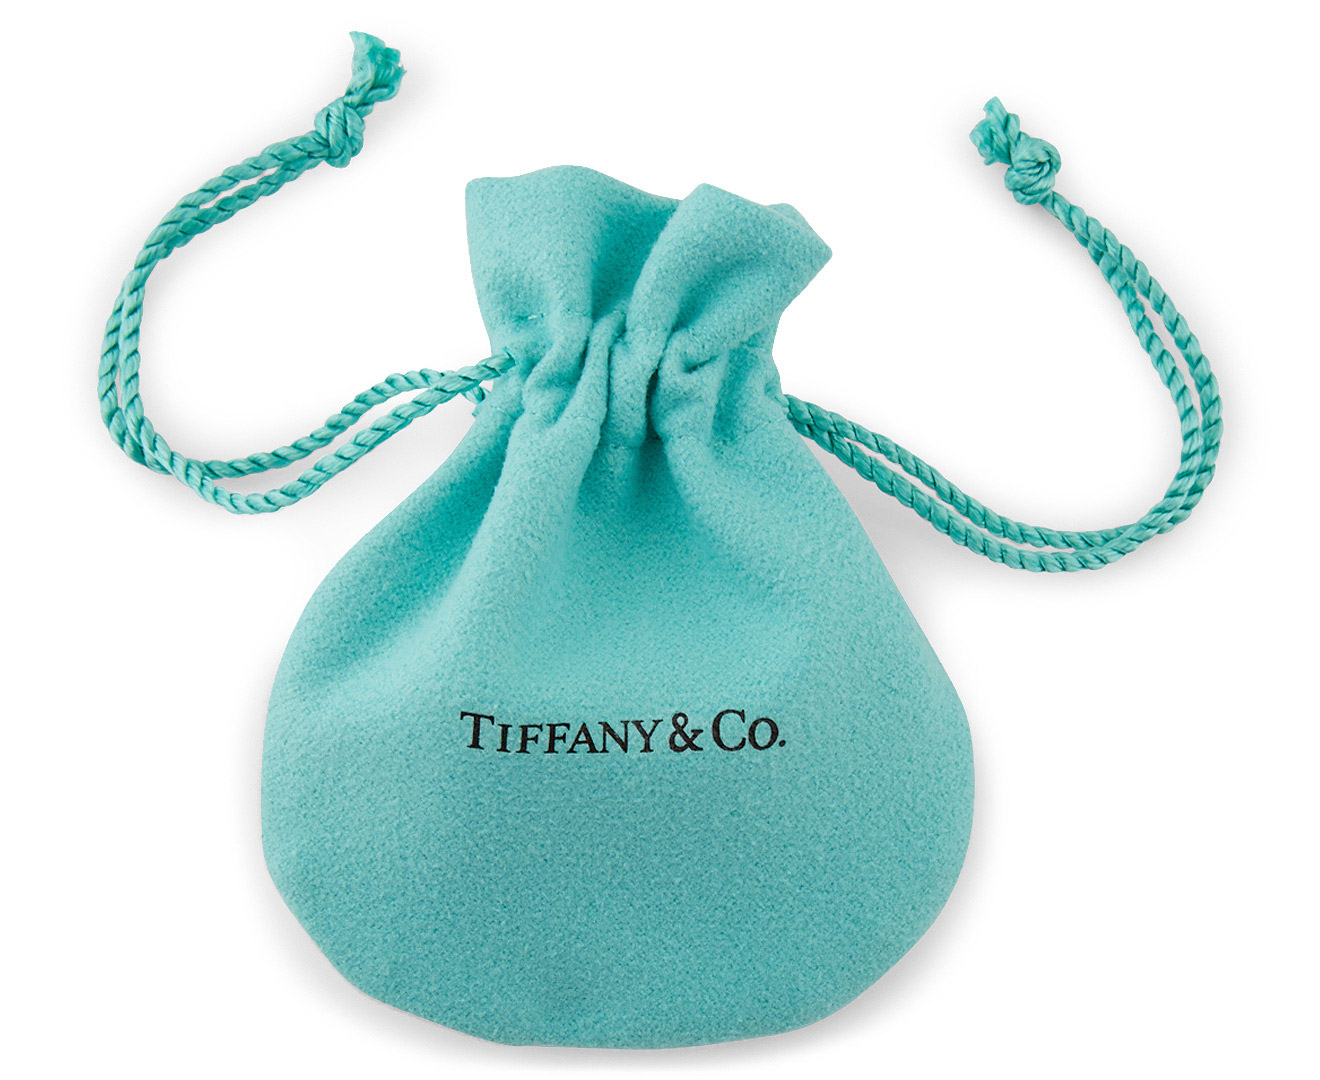 Tiffany Baby Gifts Australia : Tiffany co hoop earrings silver great daily